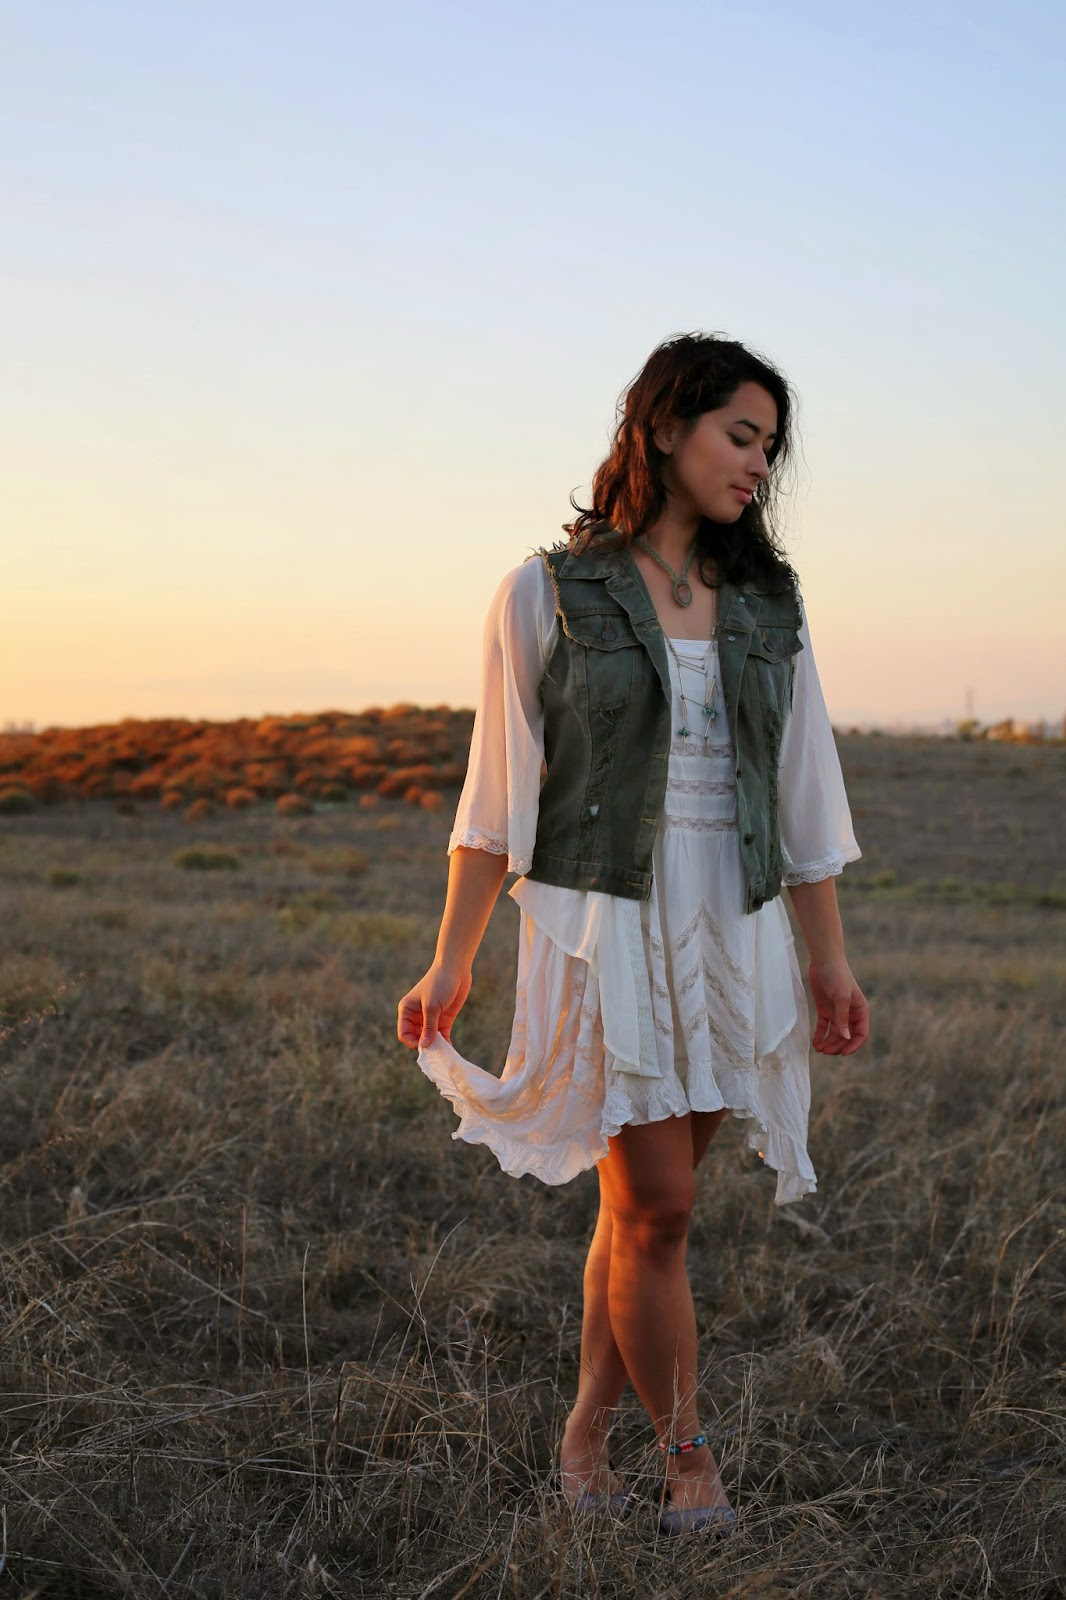 Sunset fashion blogger, free people, upcycled vintage